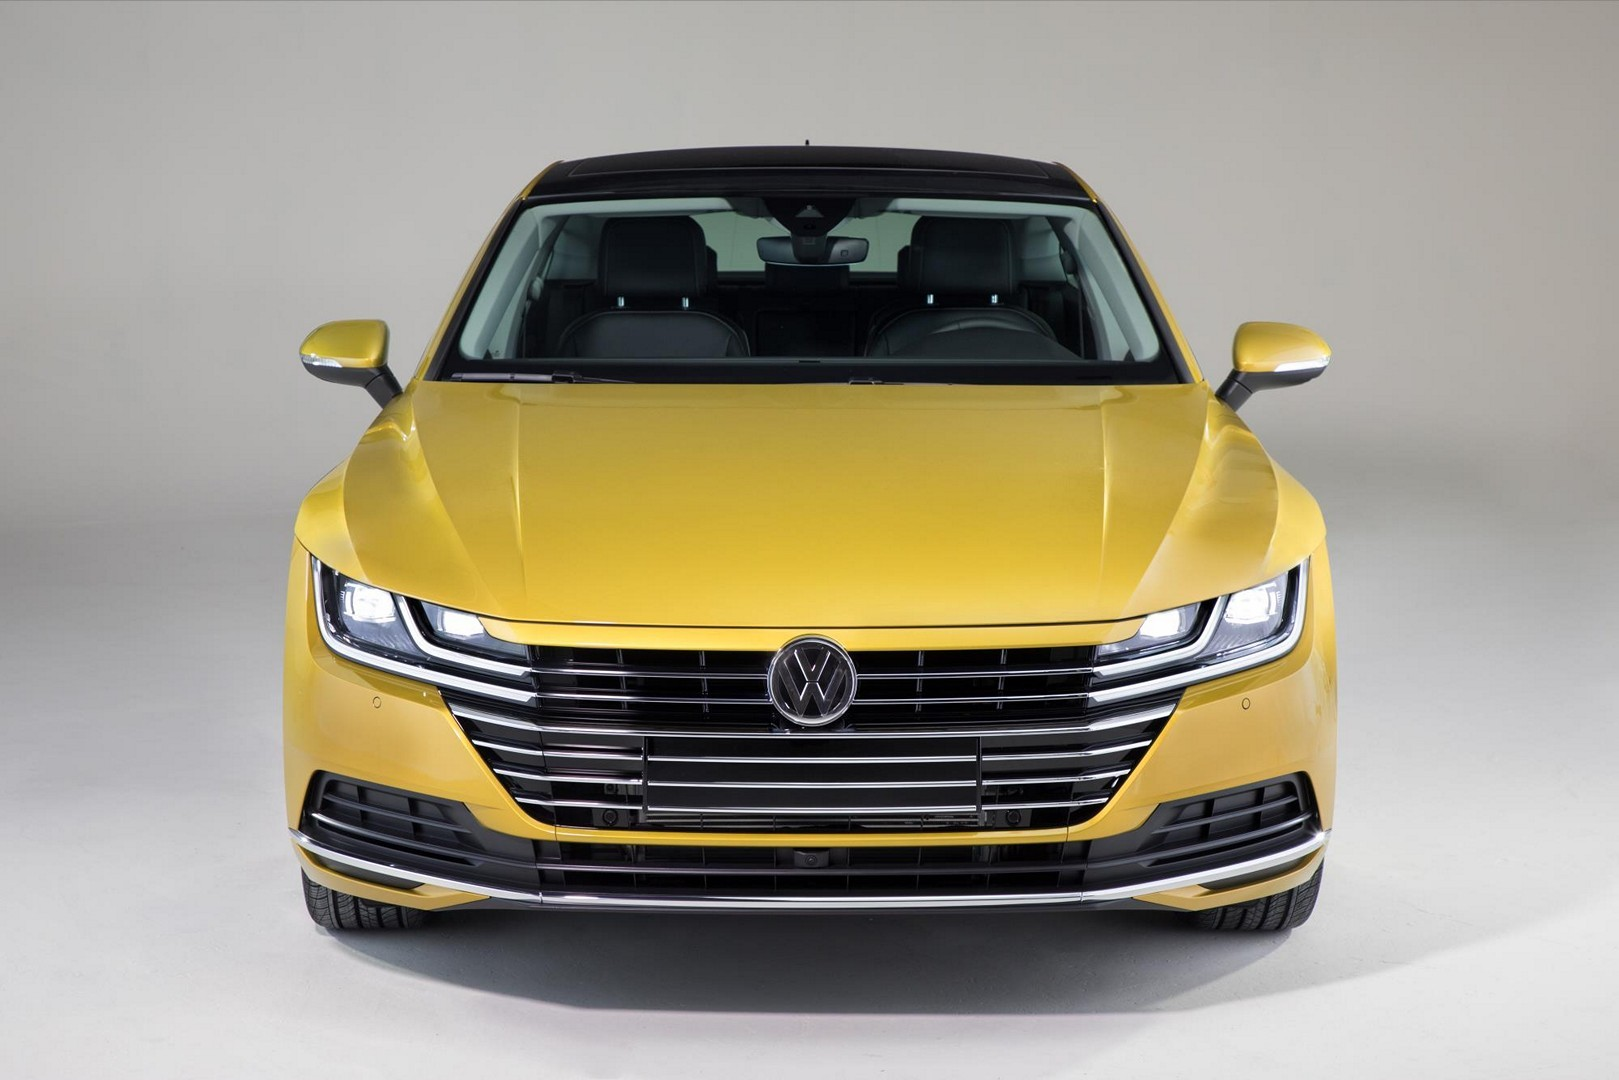 2019 Vw Arteon Flagship Sedan Launched In Chicago